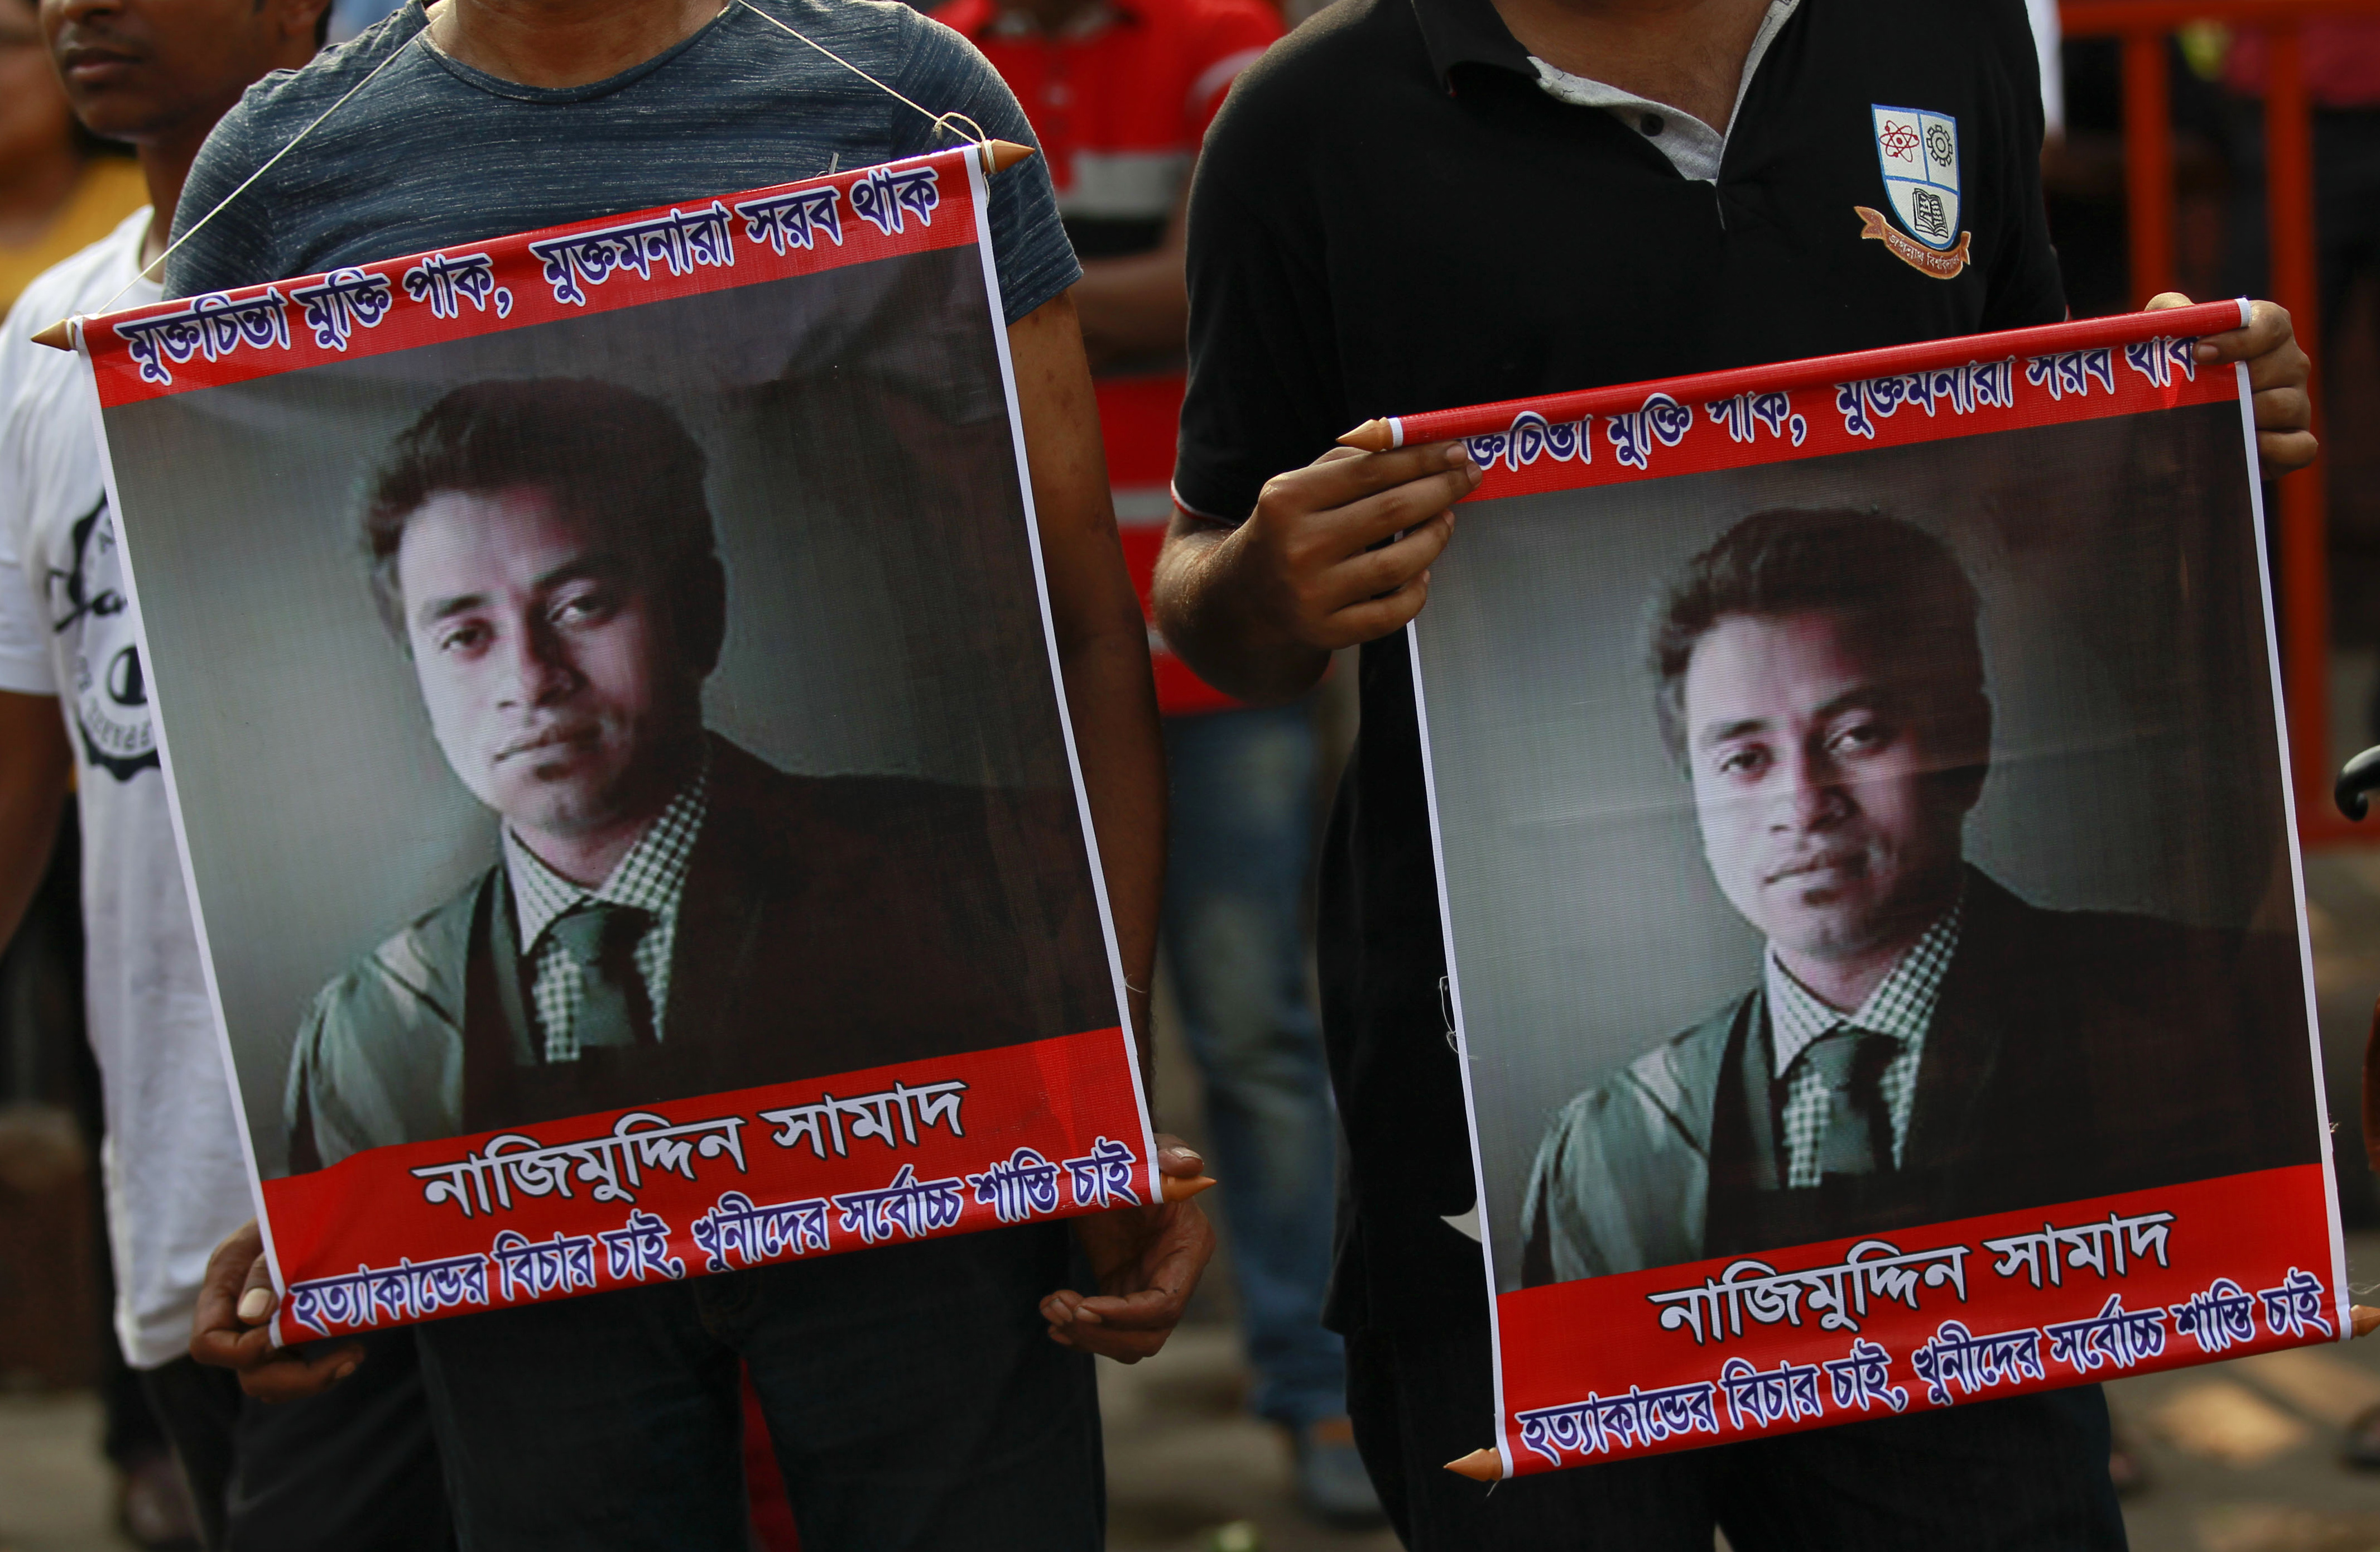 People carry portraits of student activist Nazimuddin Samad as they attend a rally to demand arrest of three motorcycle-riding assailants who hacked and shot Samad to death, in Dhaka, Bangladesh, April 8, 2016.